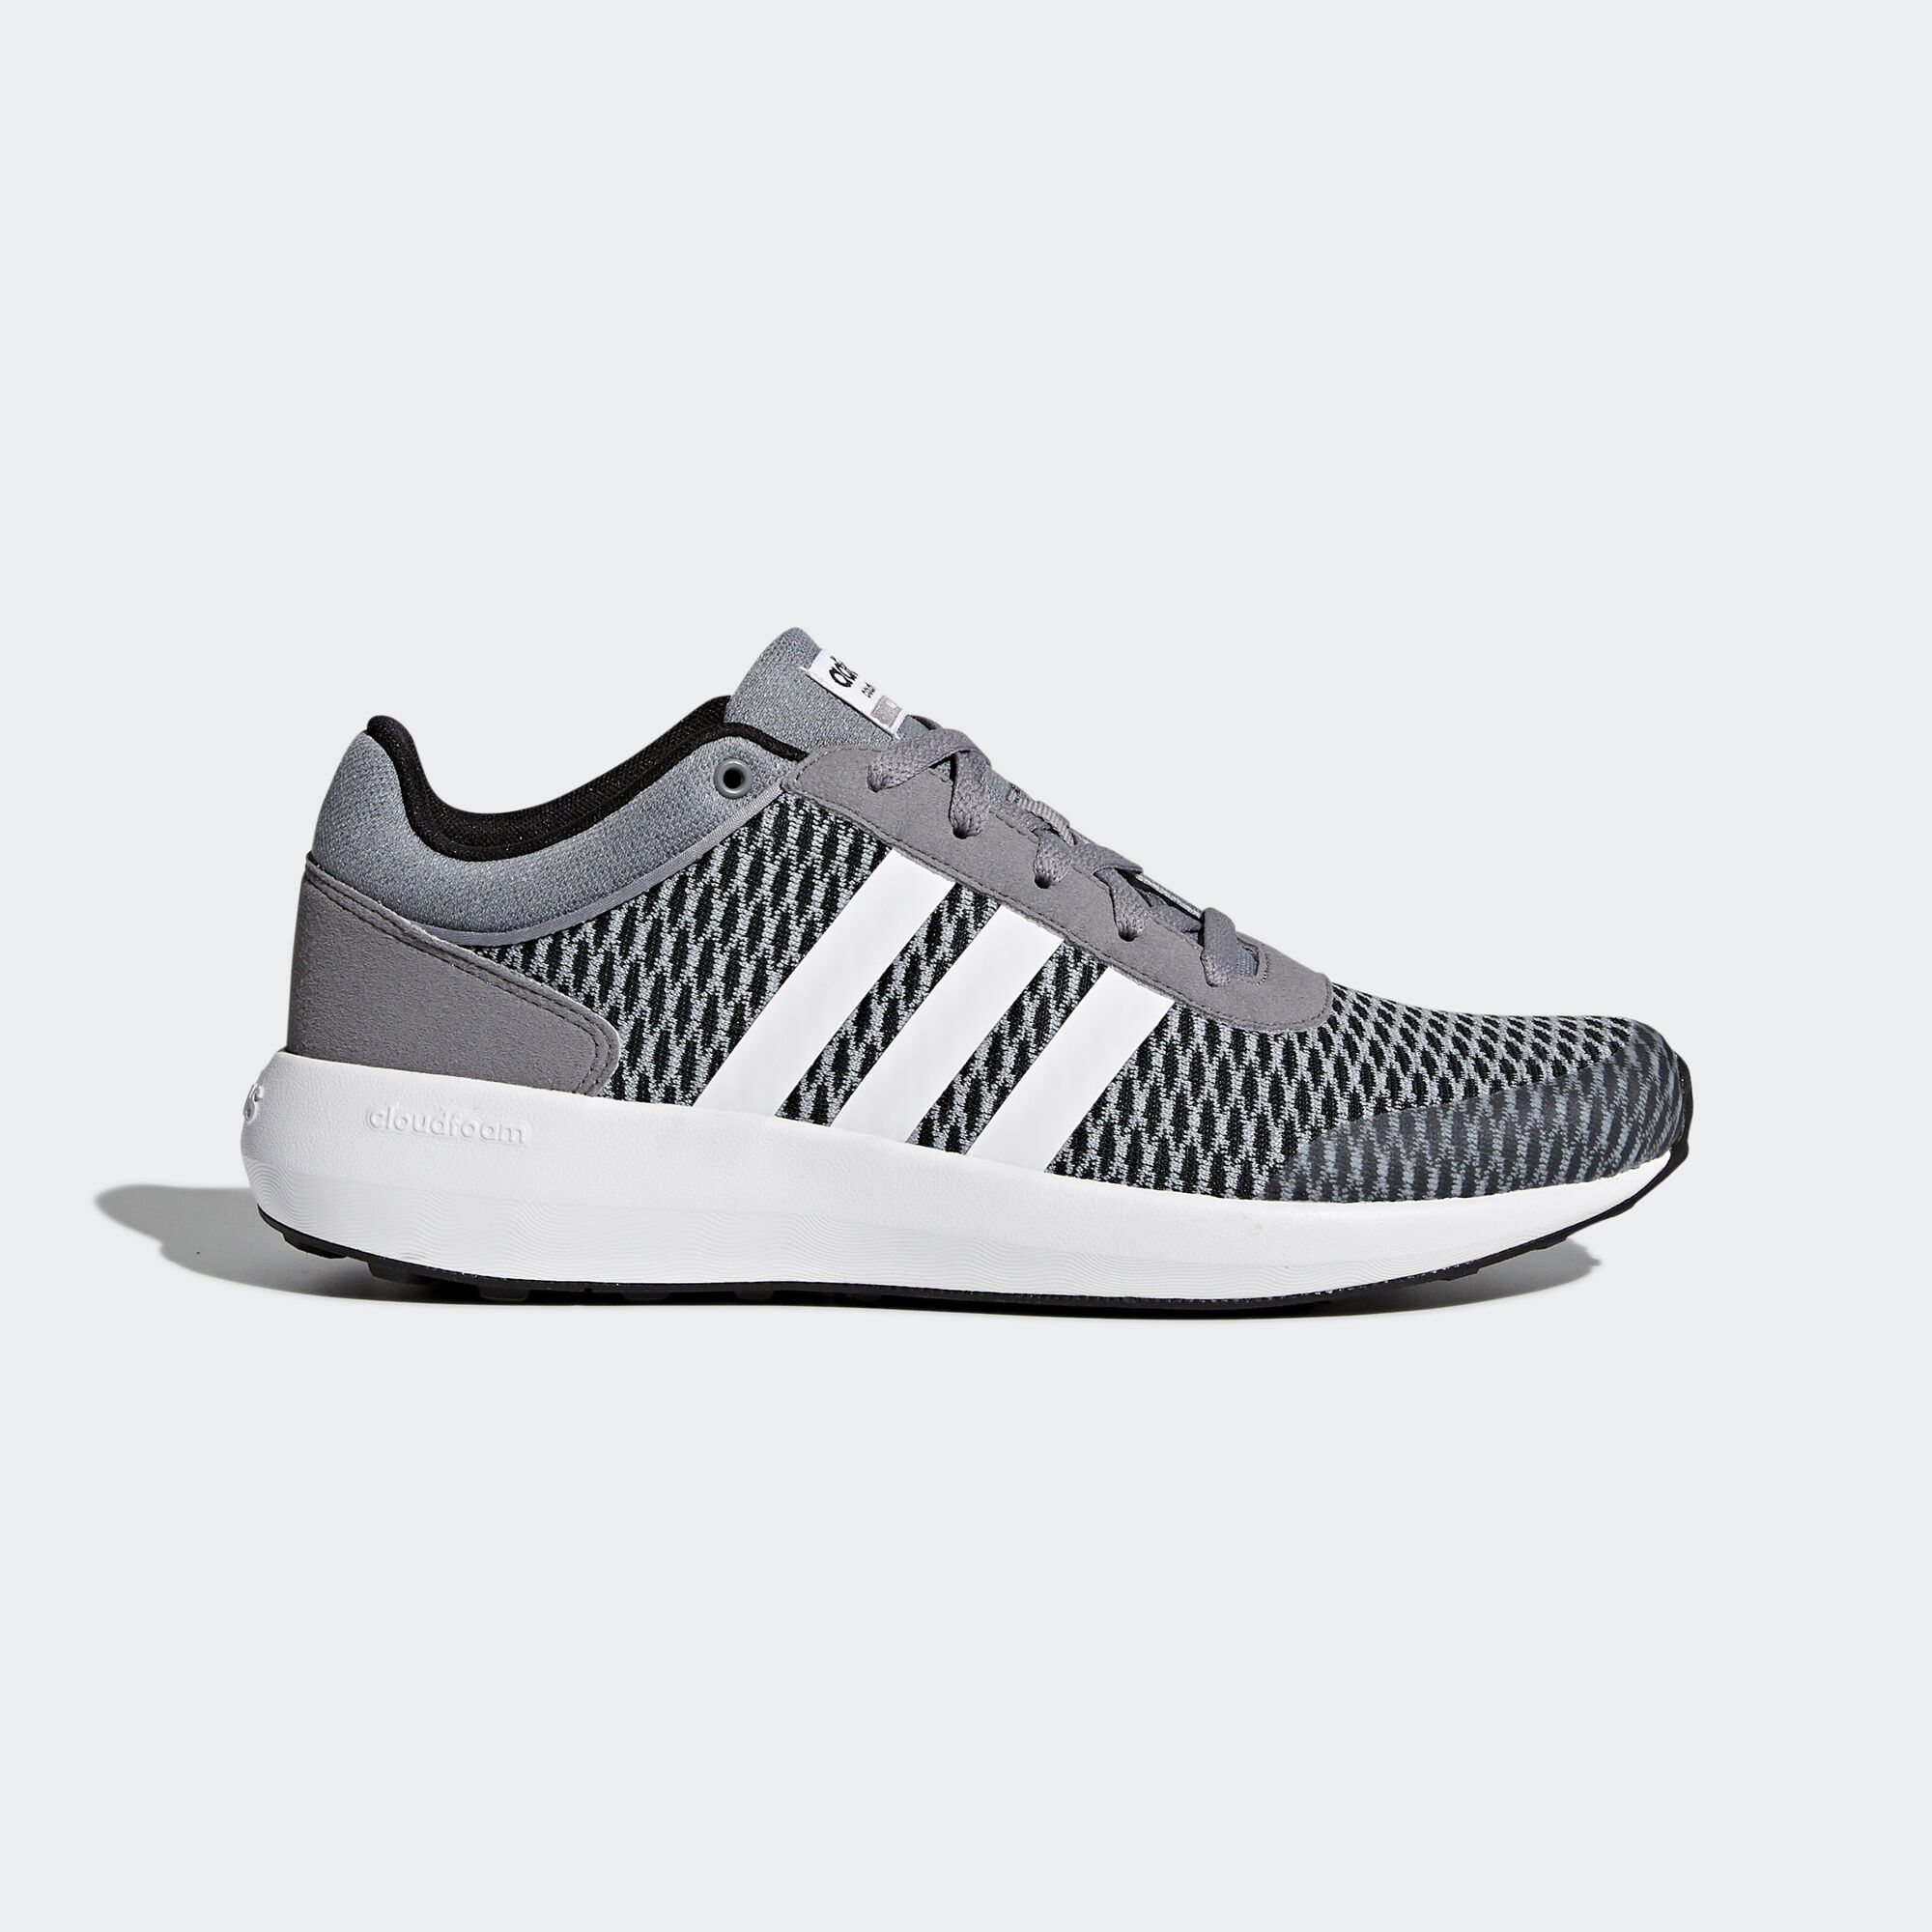 adidas shoes neo menu doha qatar weather 615500